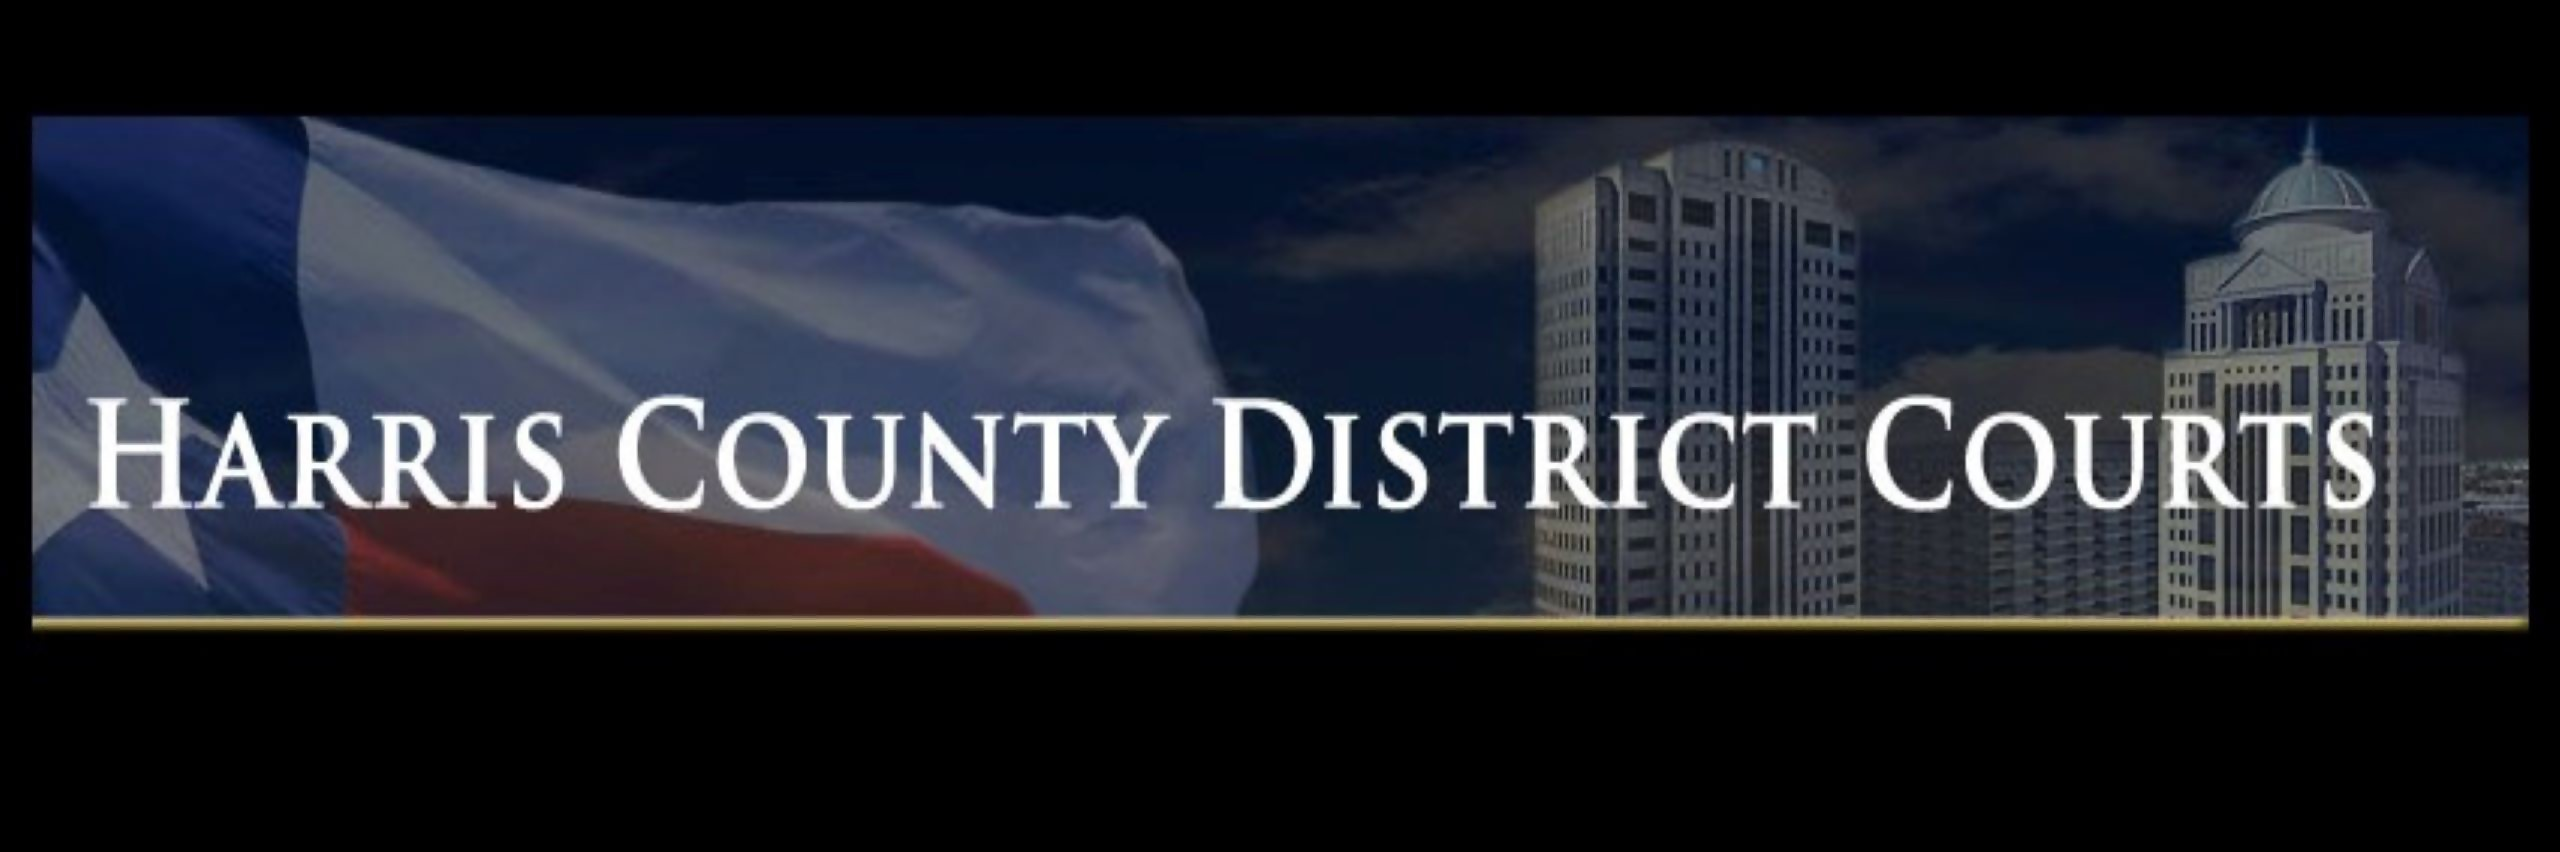 309th District Court - Live Stream